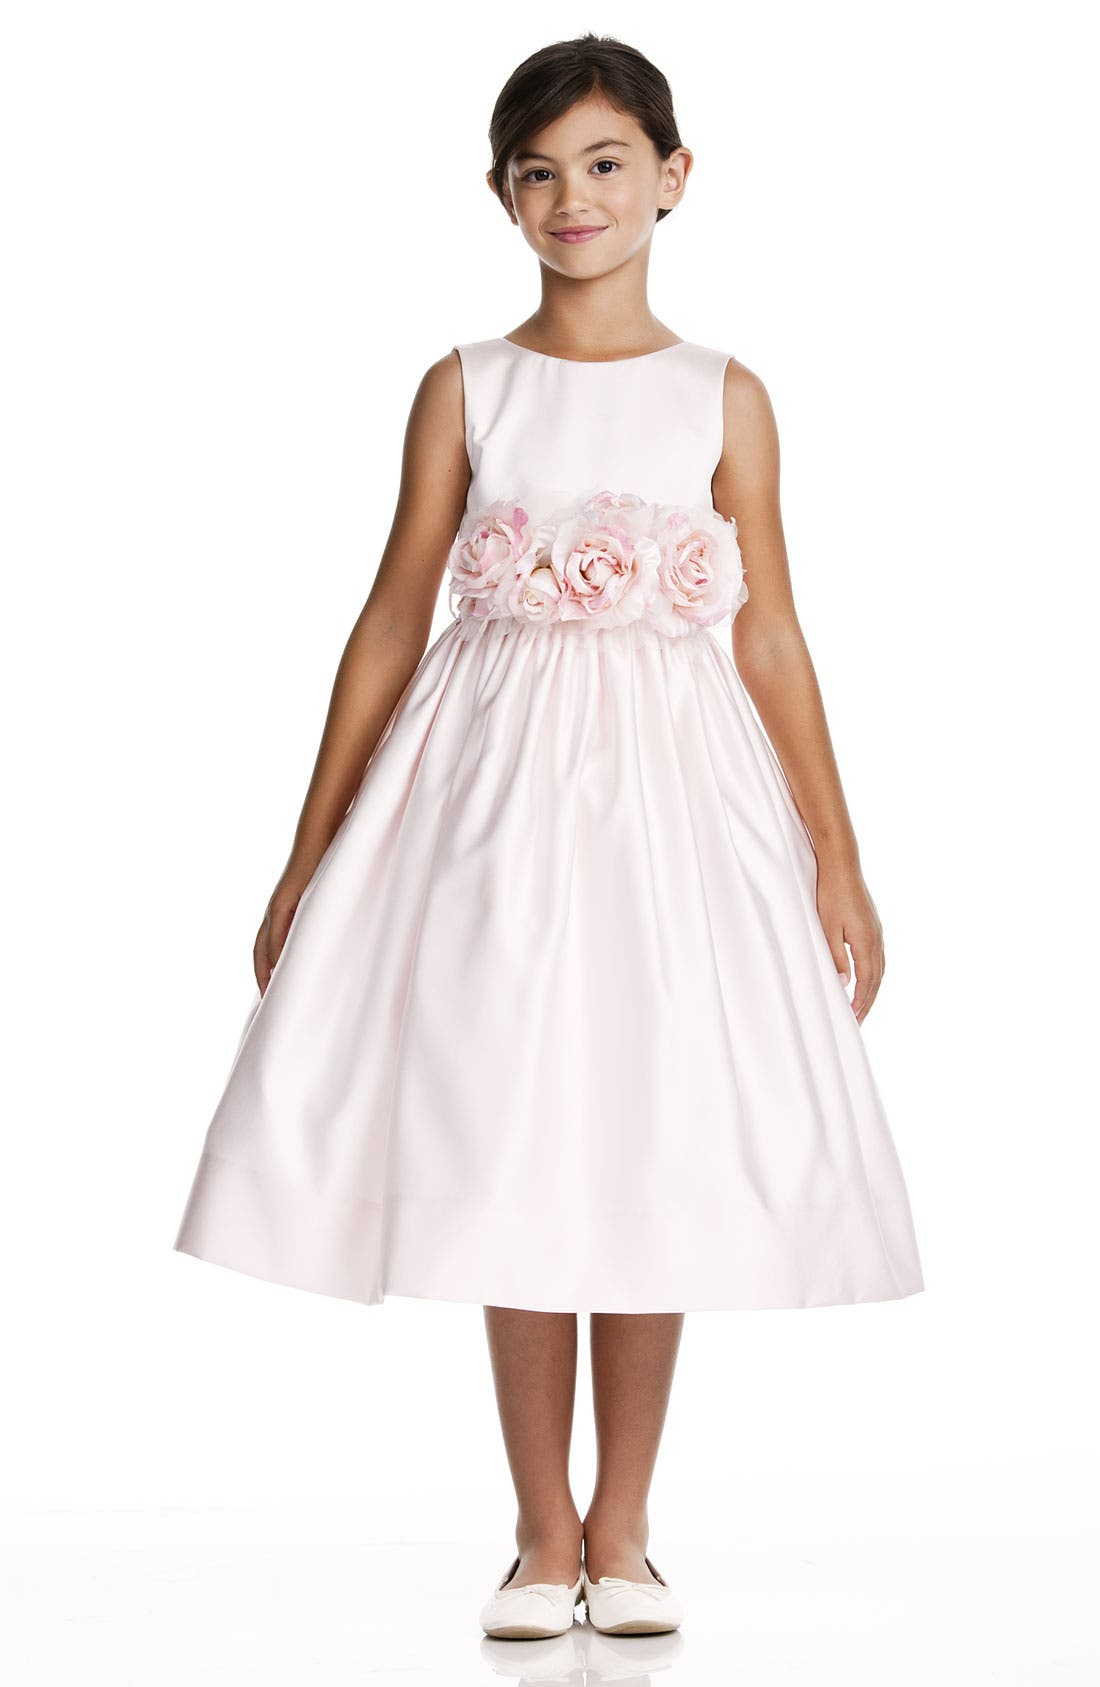 Main Image - Us Angels Flower Sash Sleeveless Dress (Toddler Girls)